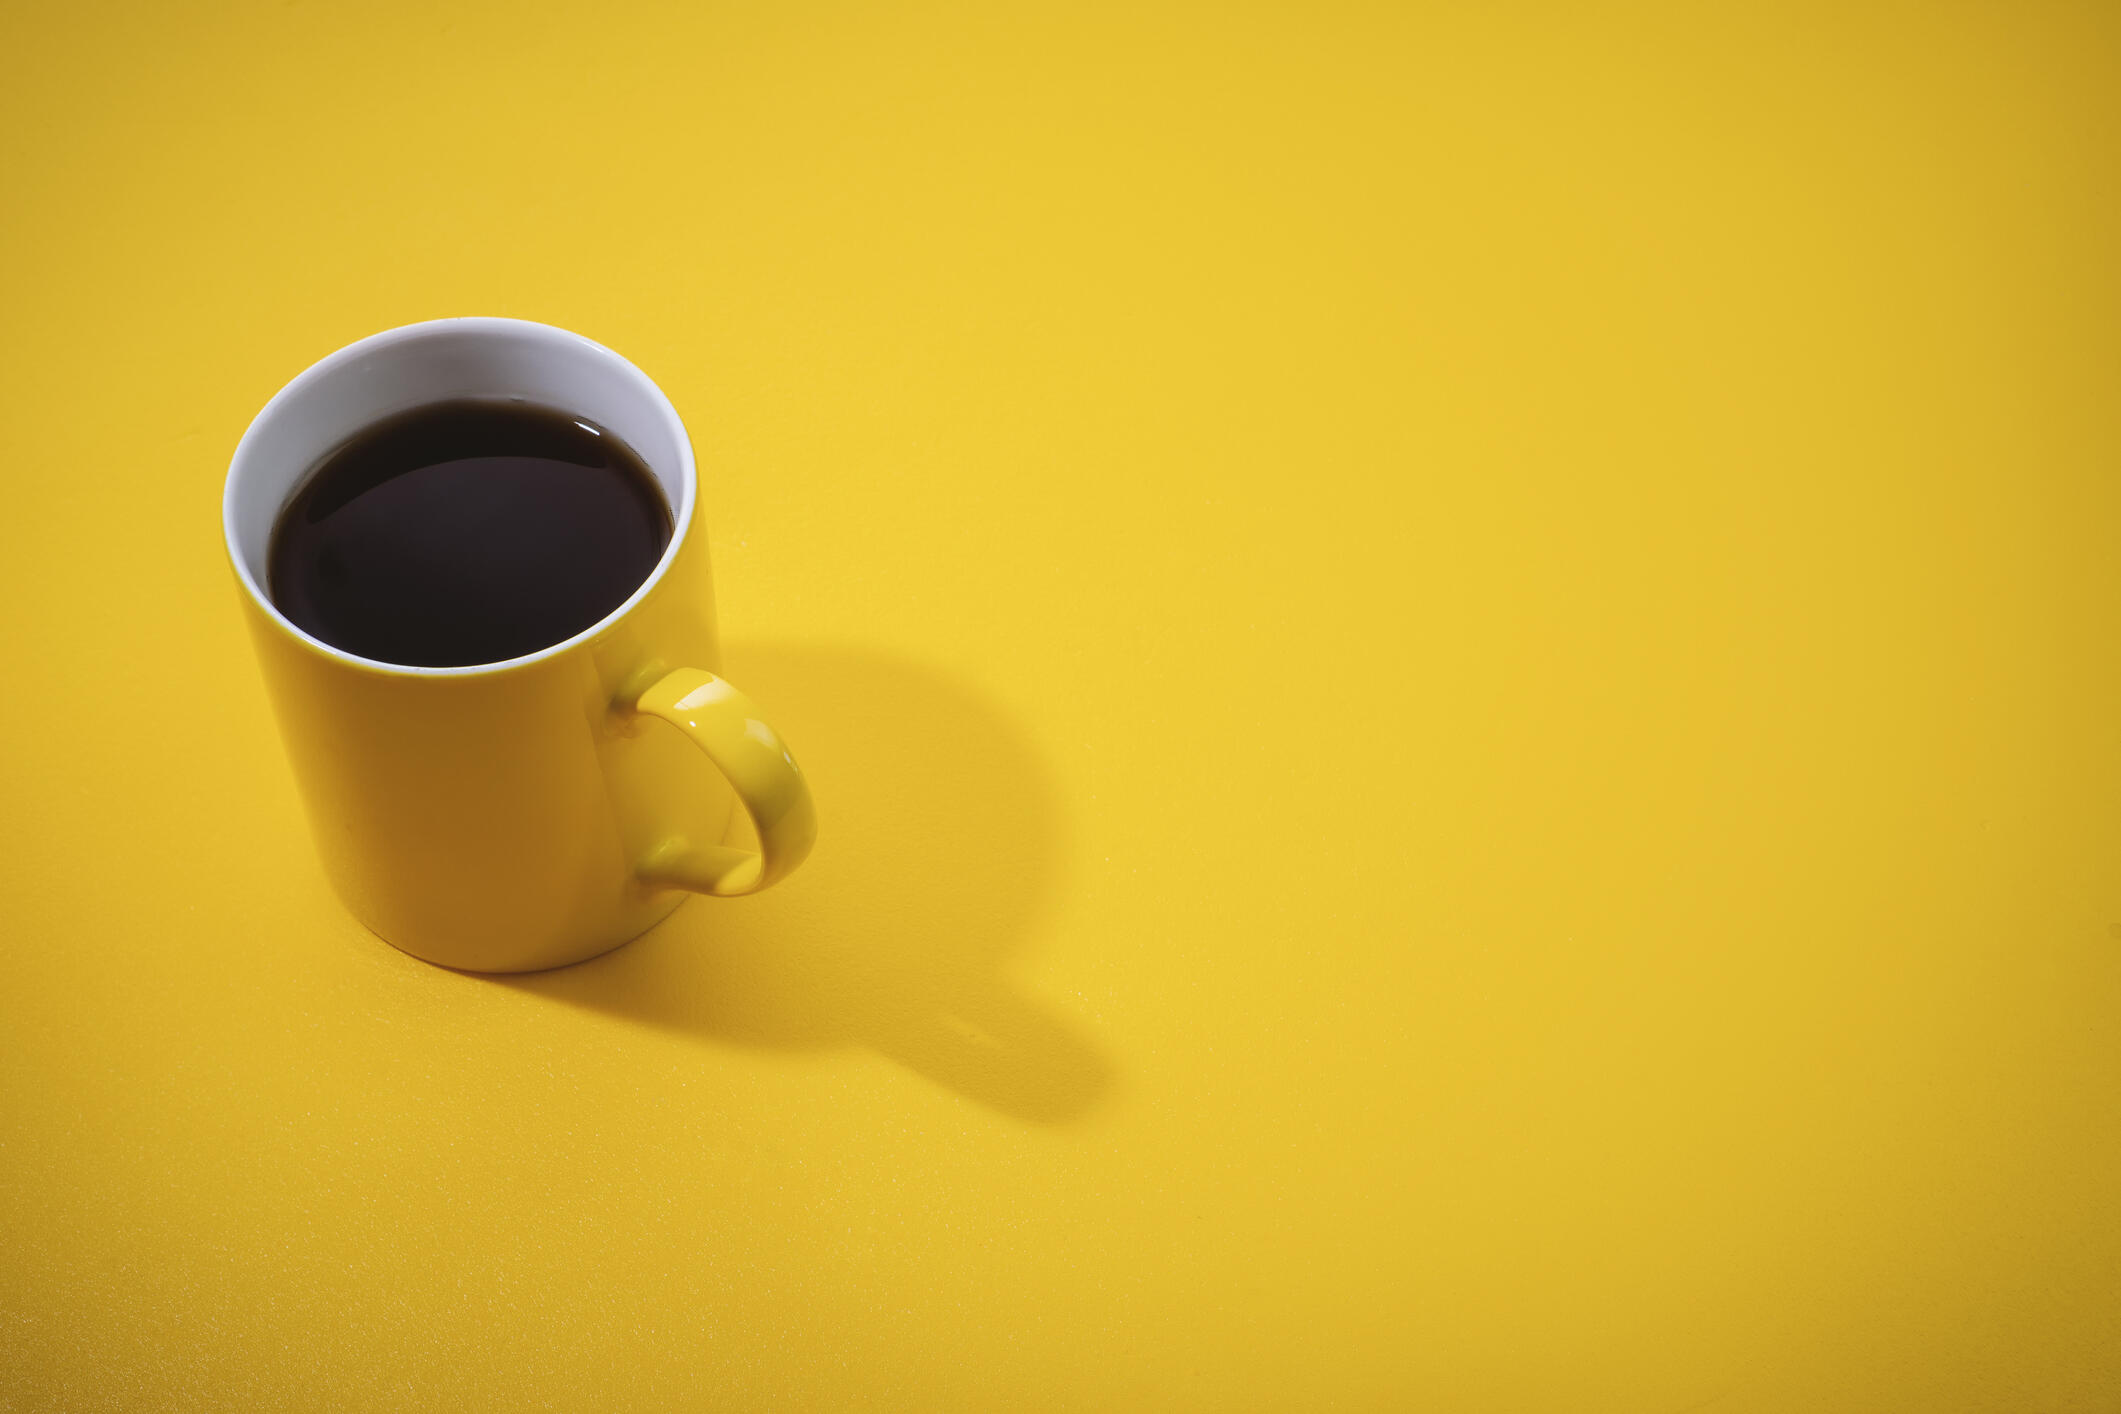 cup of coffee on a yellow background